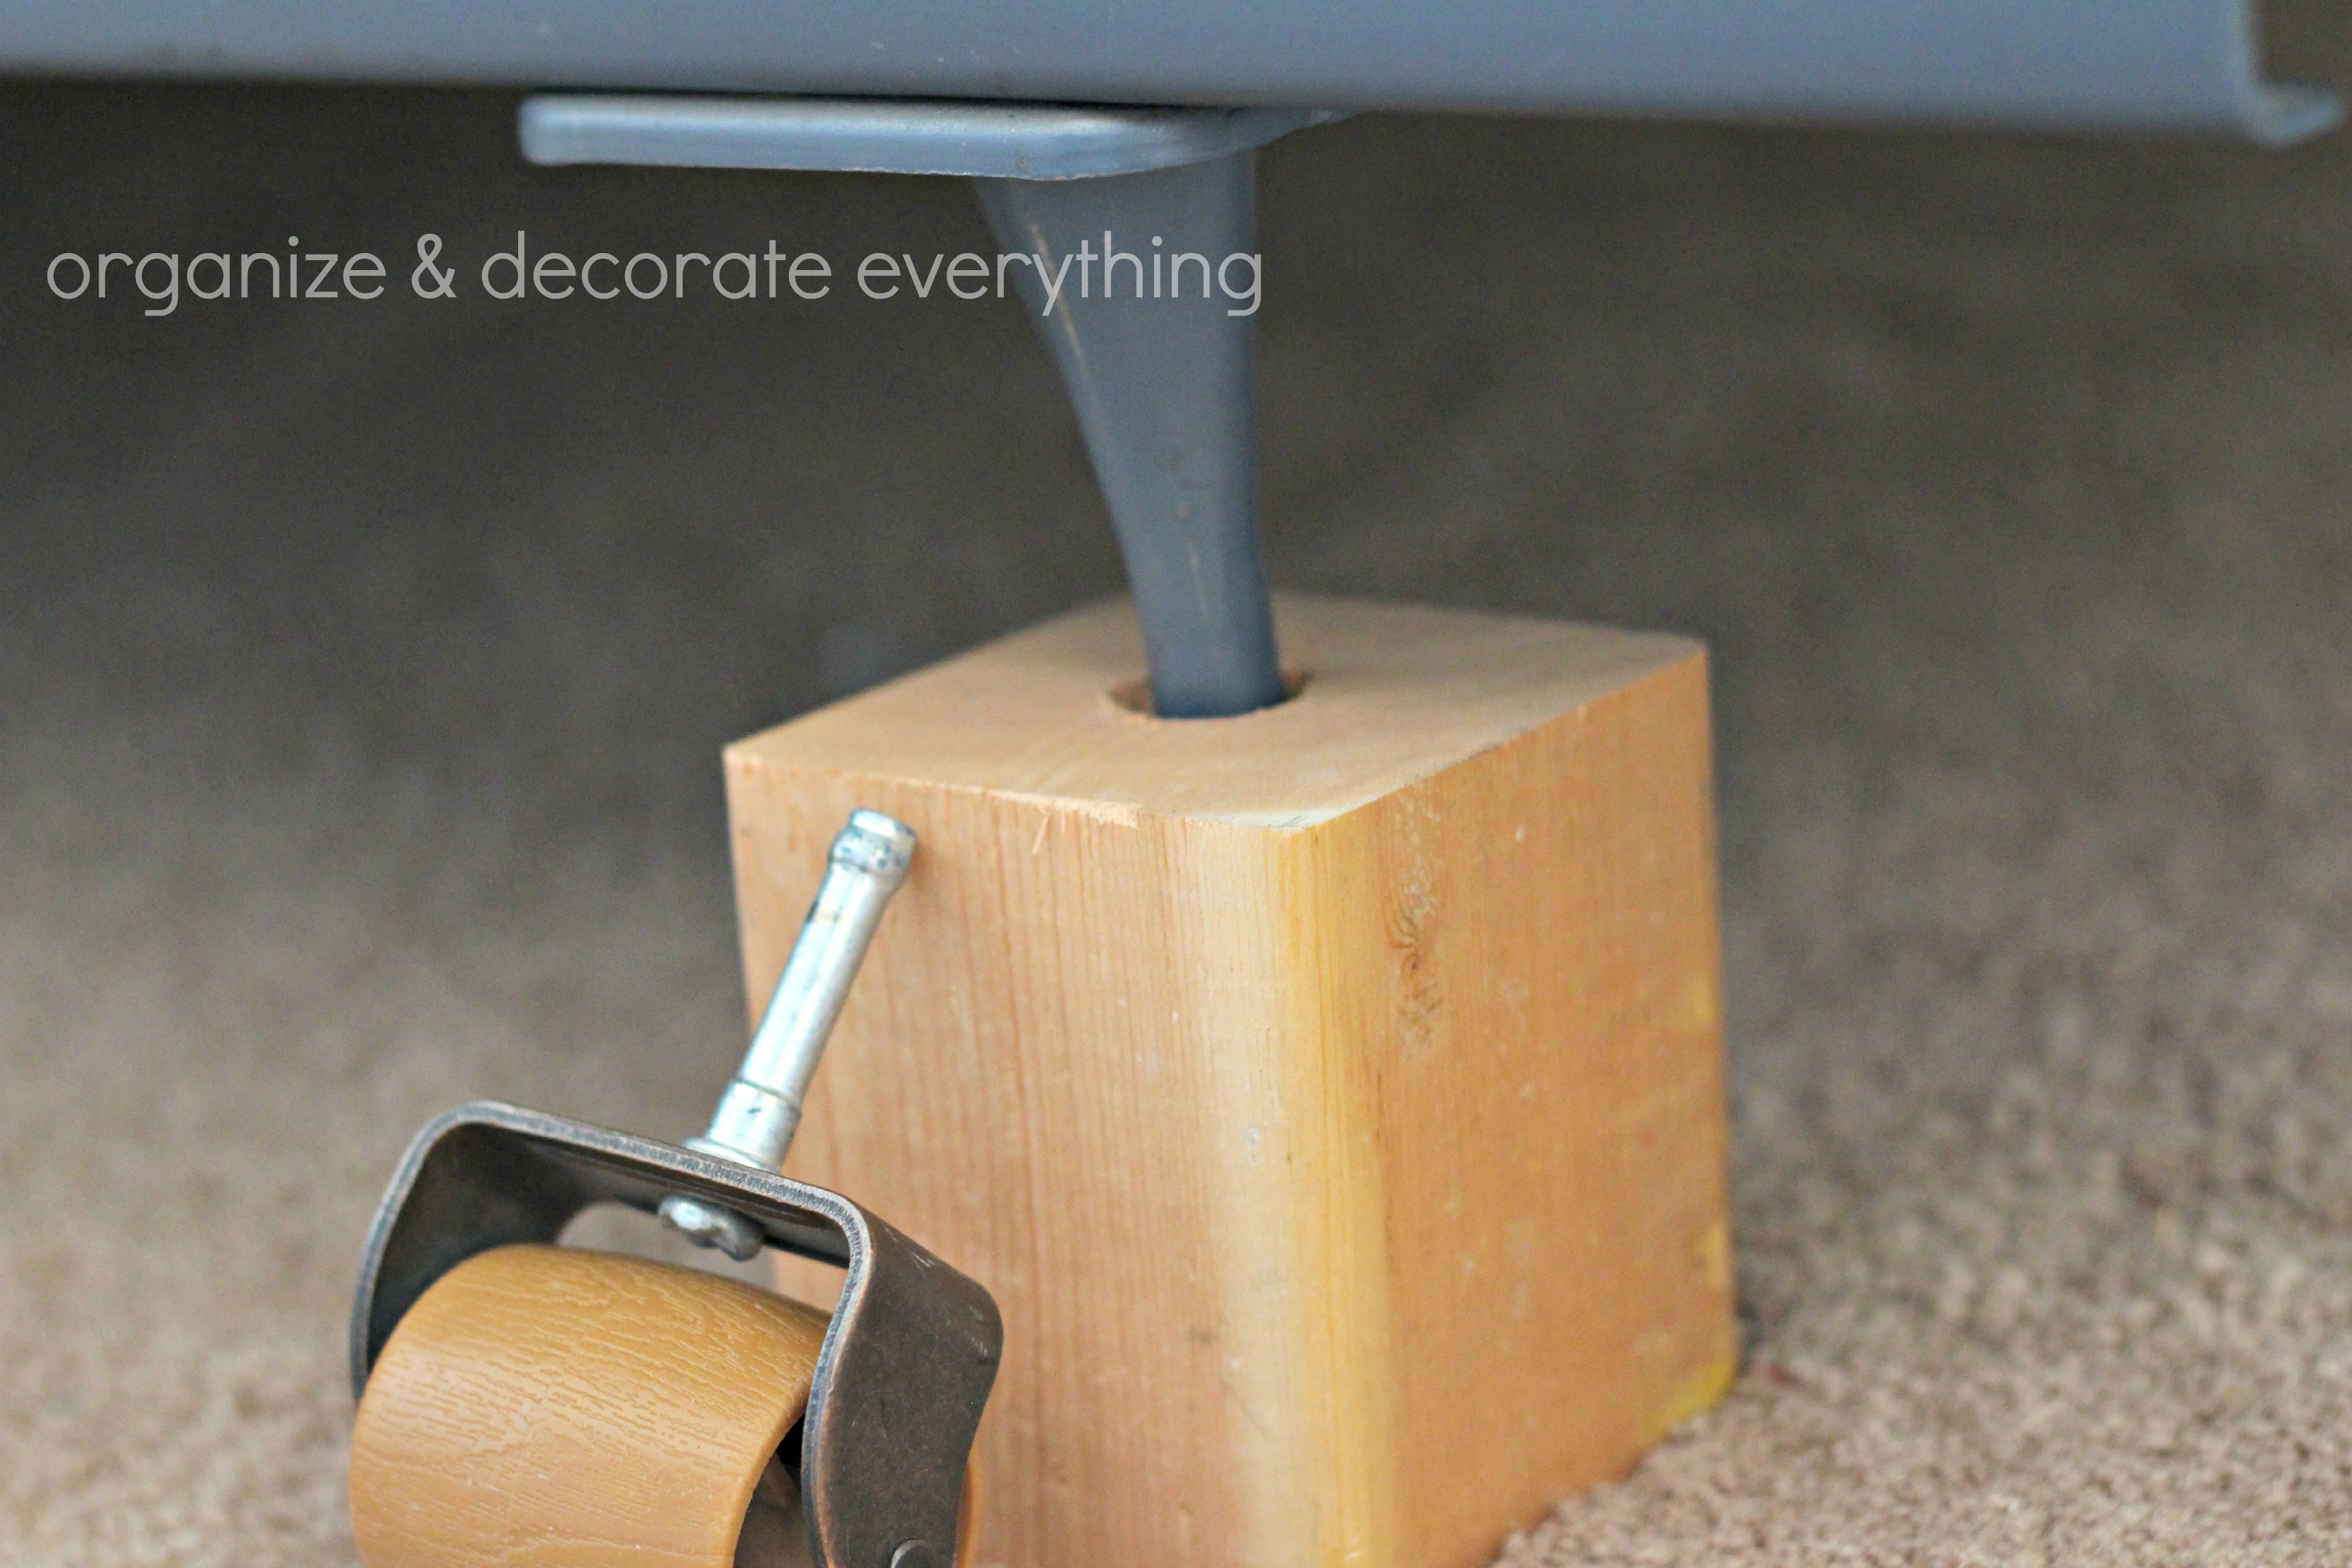 DIY Bed Risers Organize and Decorate Everything